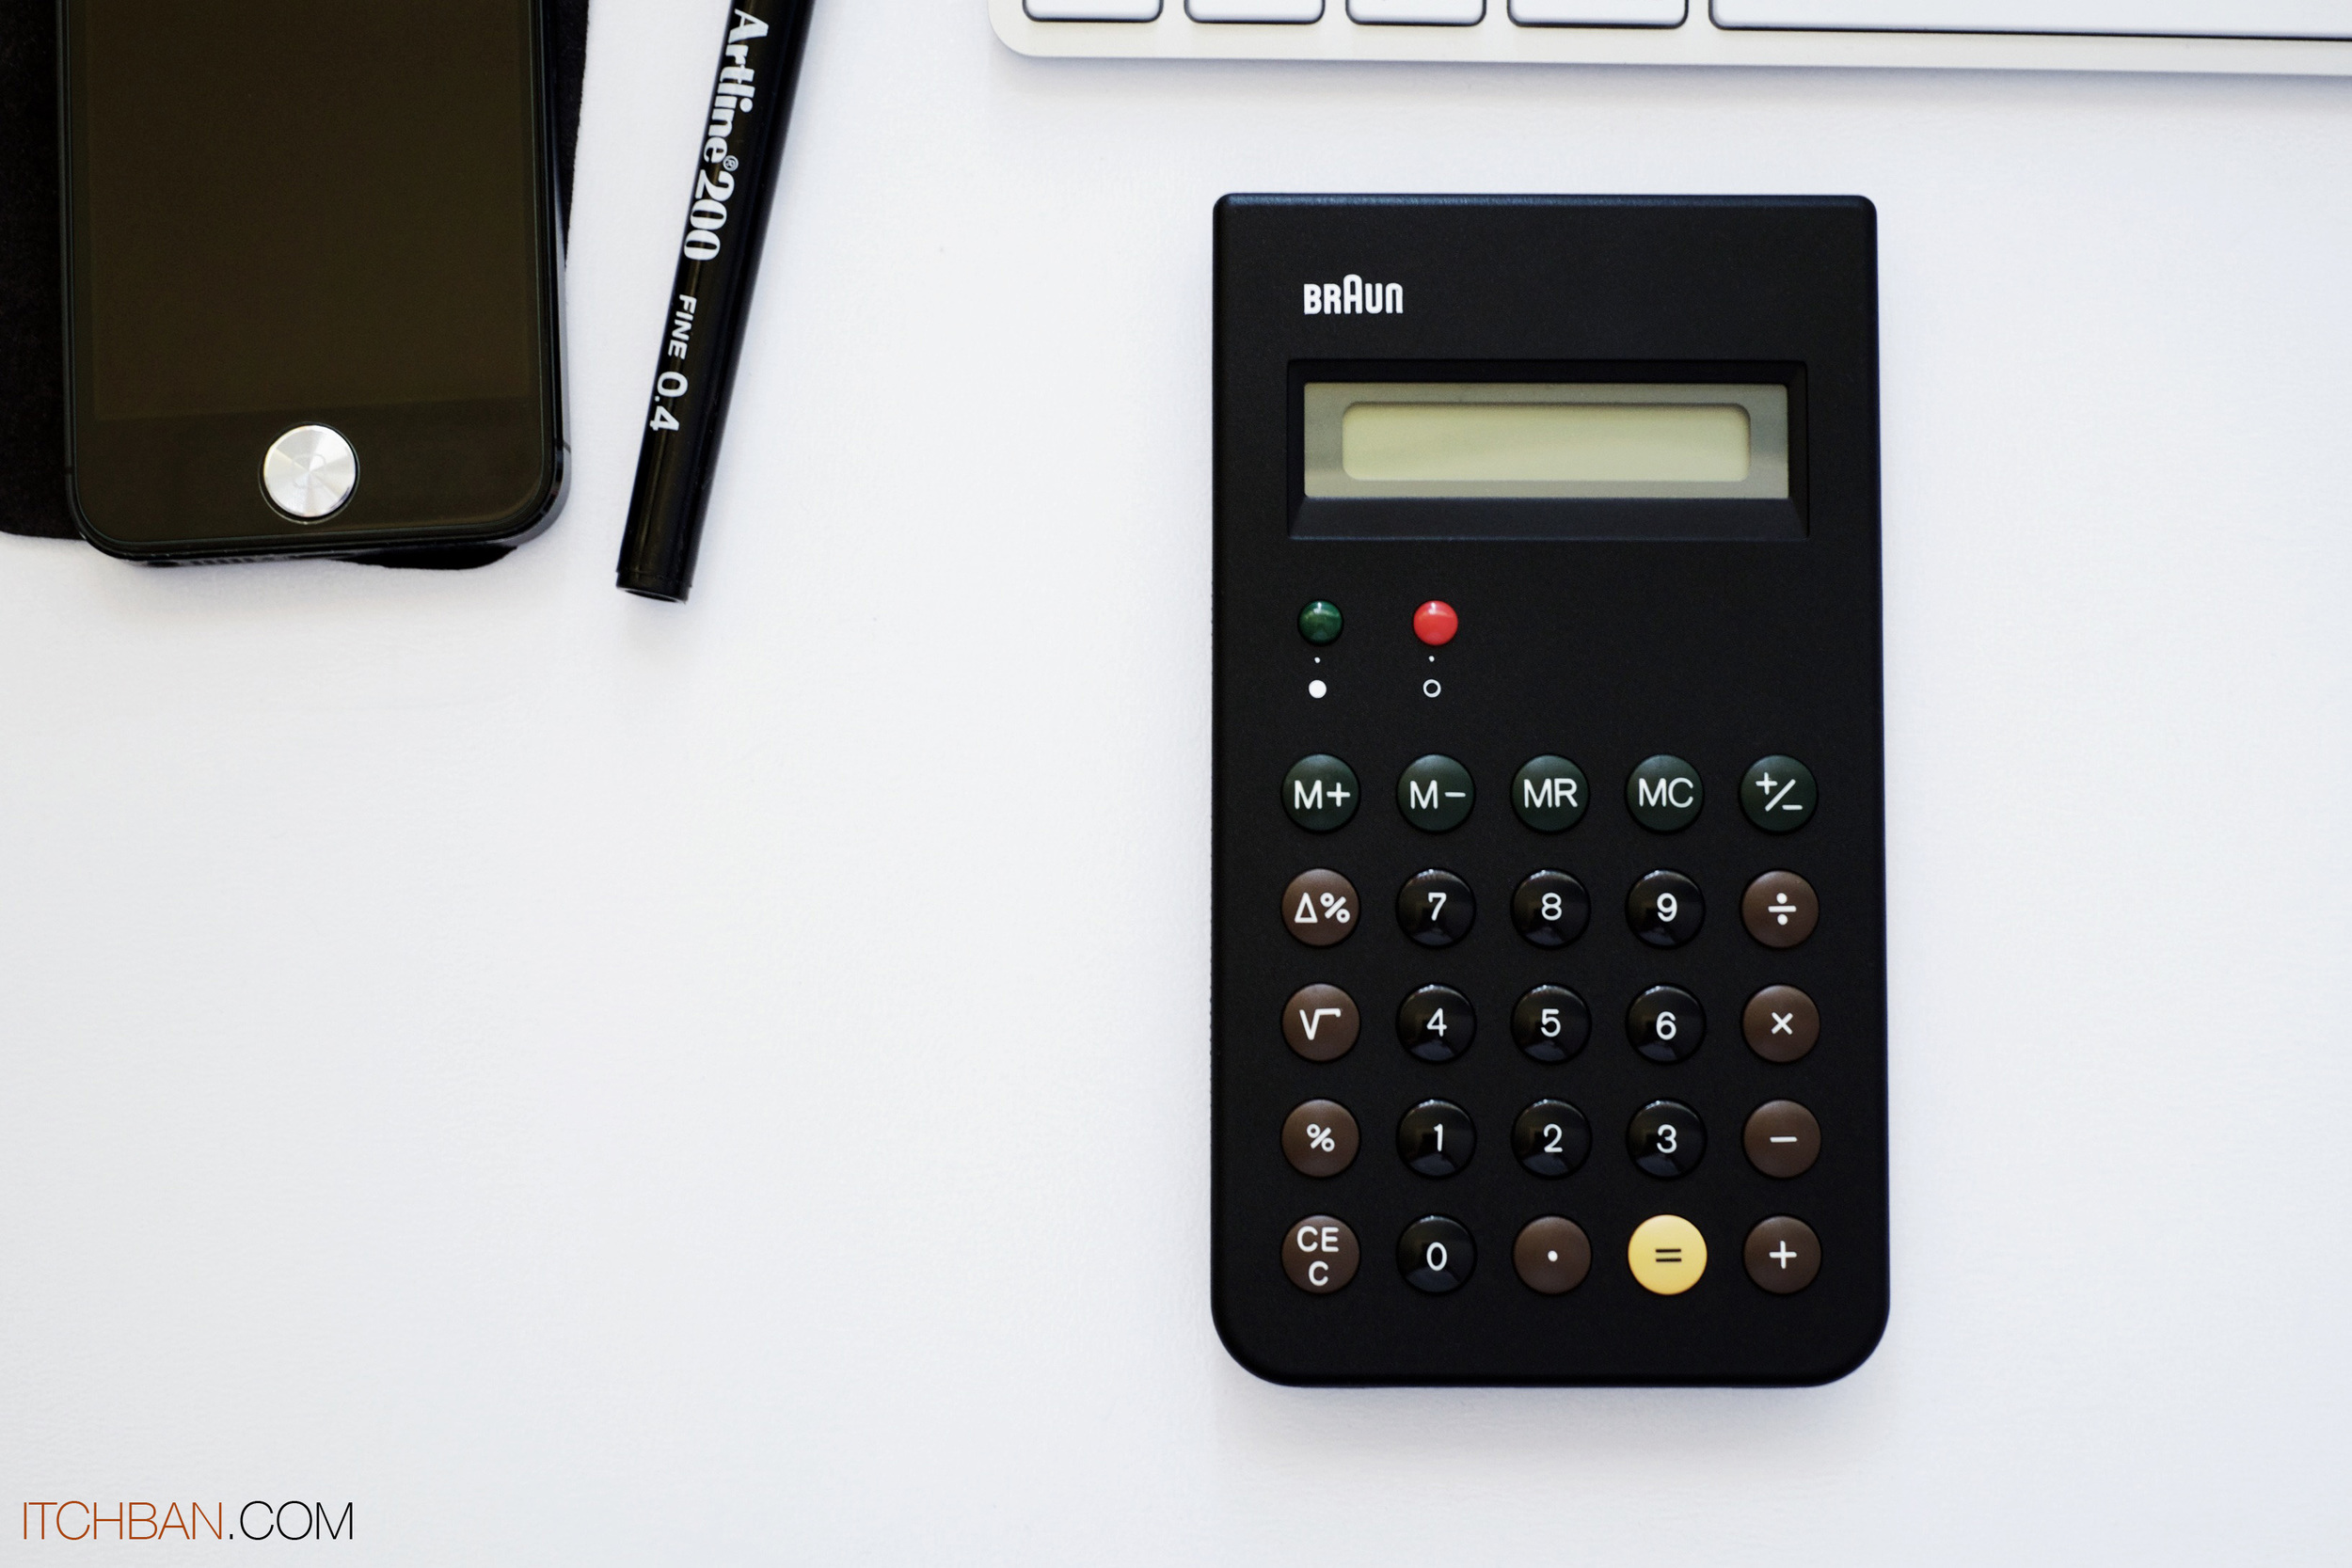 Braun ET66 Calculator Black 04.jpg